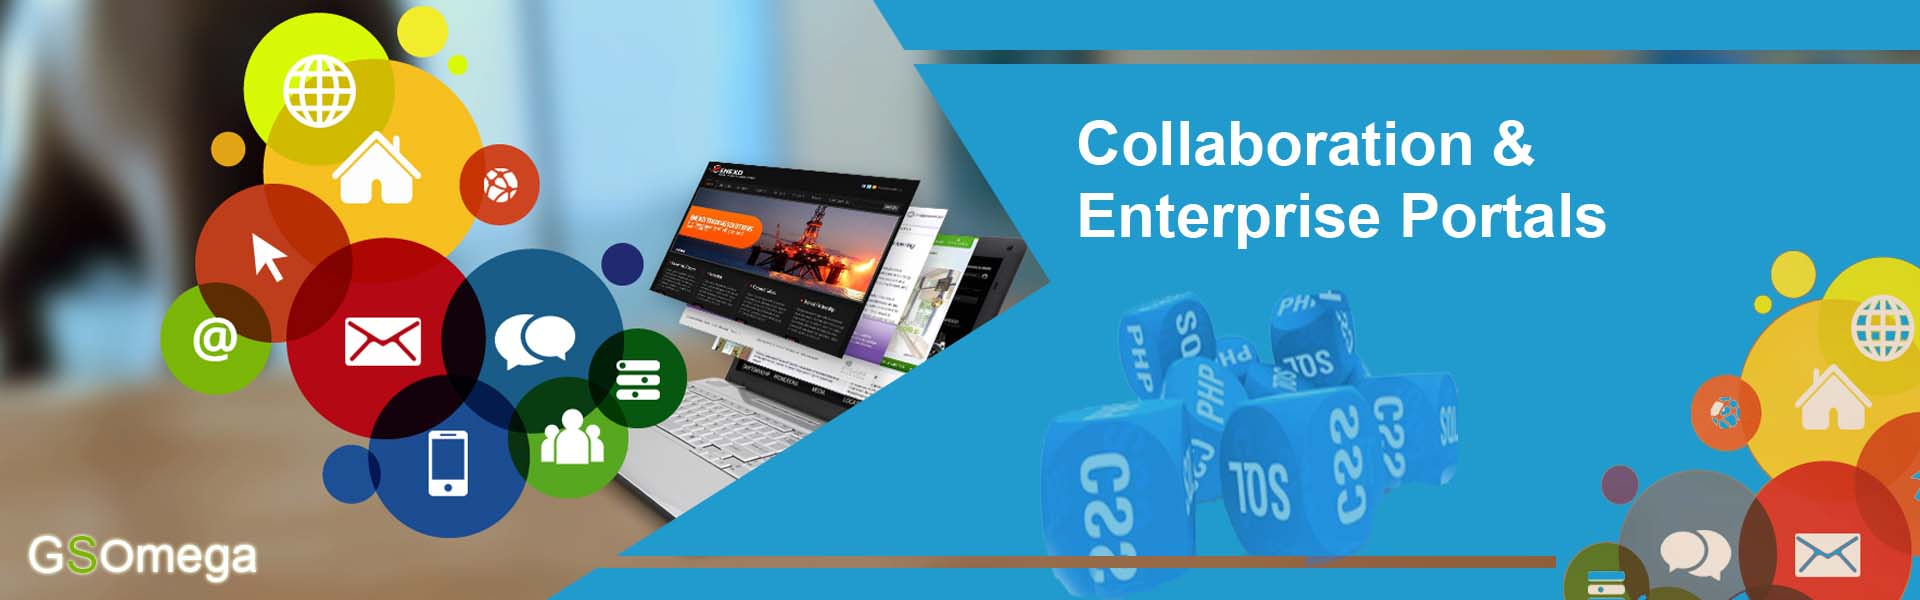 Collaboration & Enterprise Portals